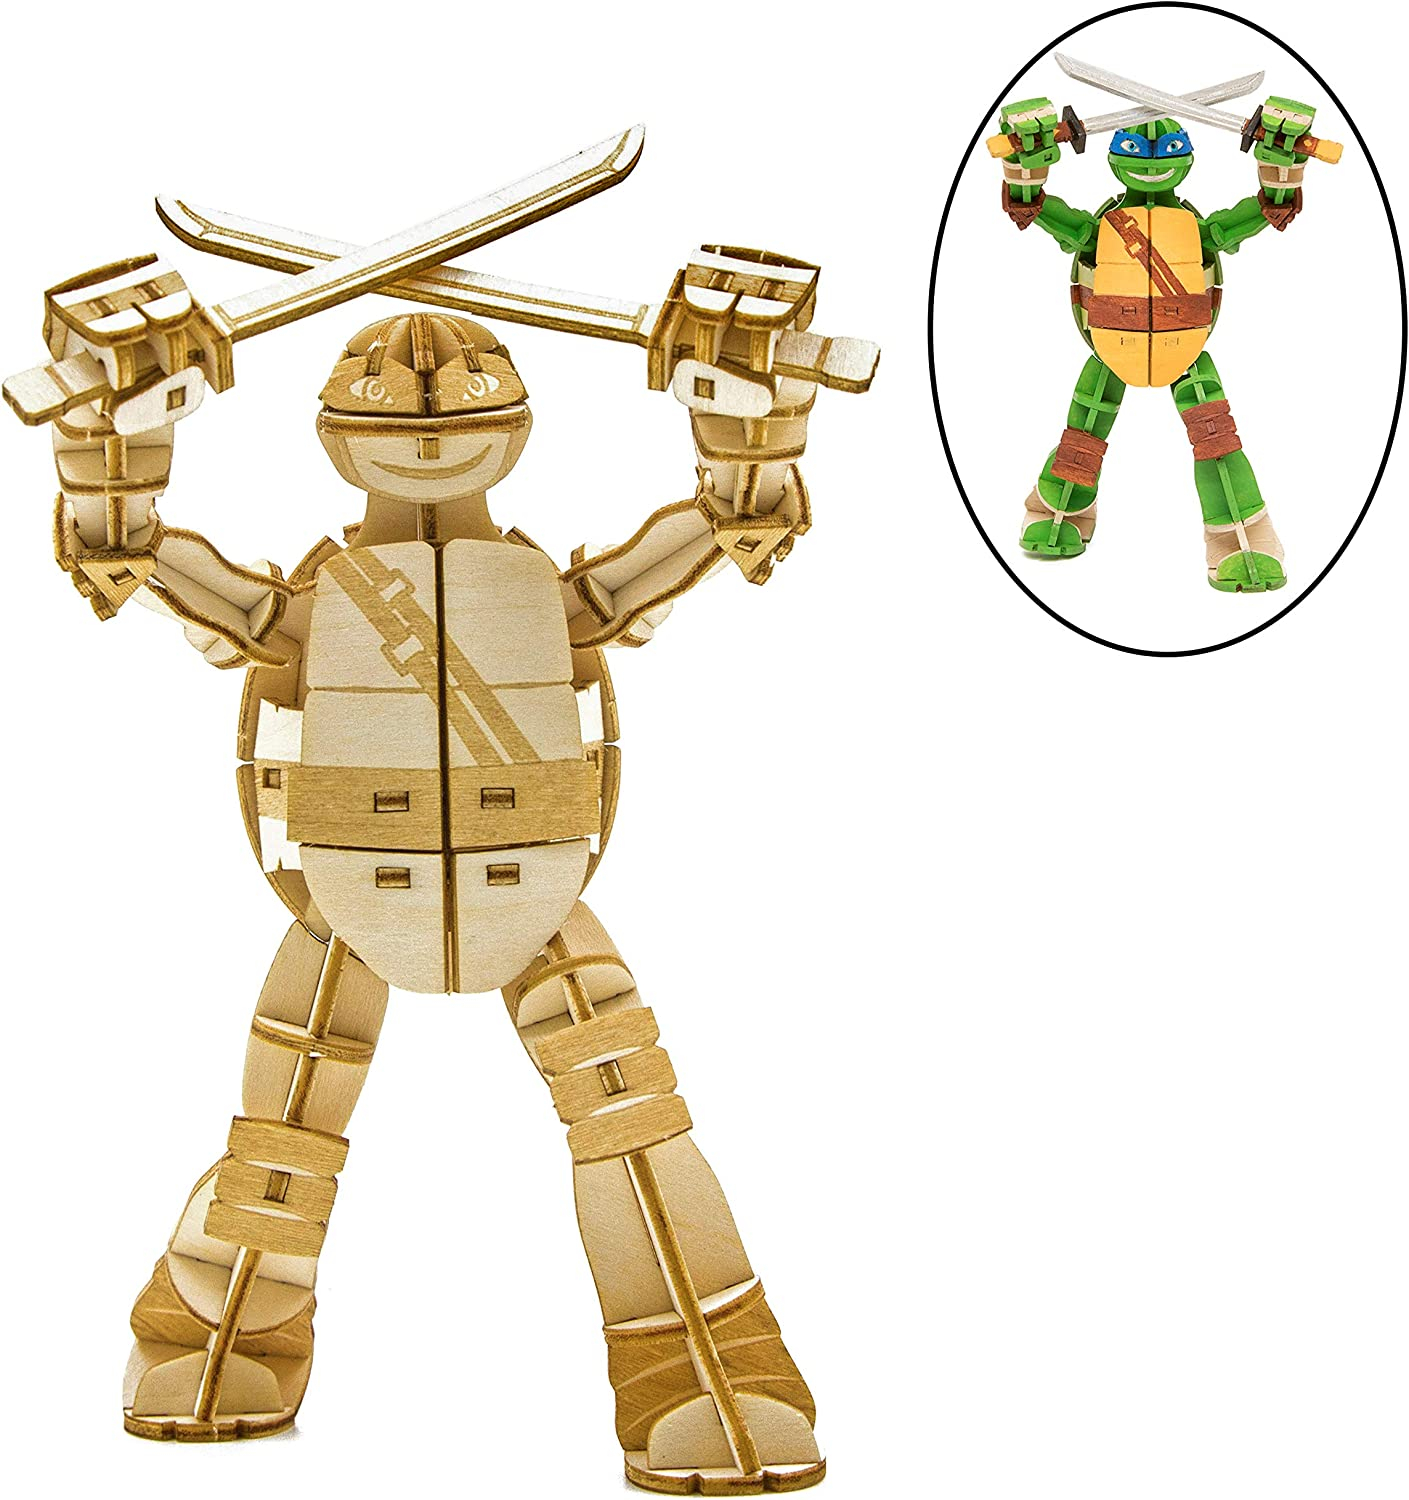 """Teenage Mutant Ninja Turtles Leonardo 3D Wood Model Figure Kit - Build, Paint and Collect Your Own Wooden Toy Model - Great for Kids and Adults, 12+ - 5.5"""""""